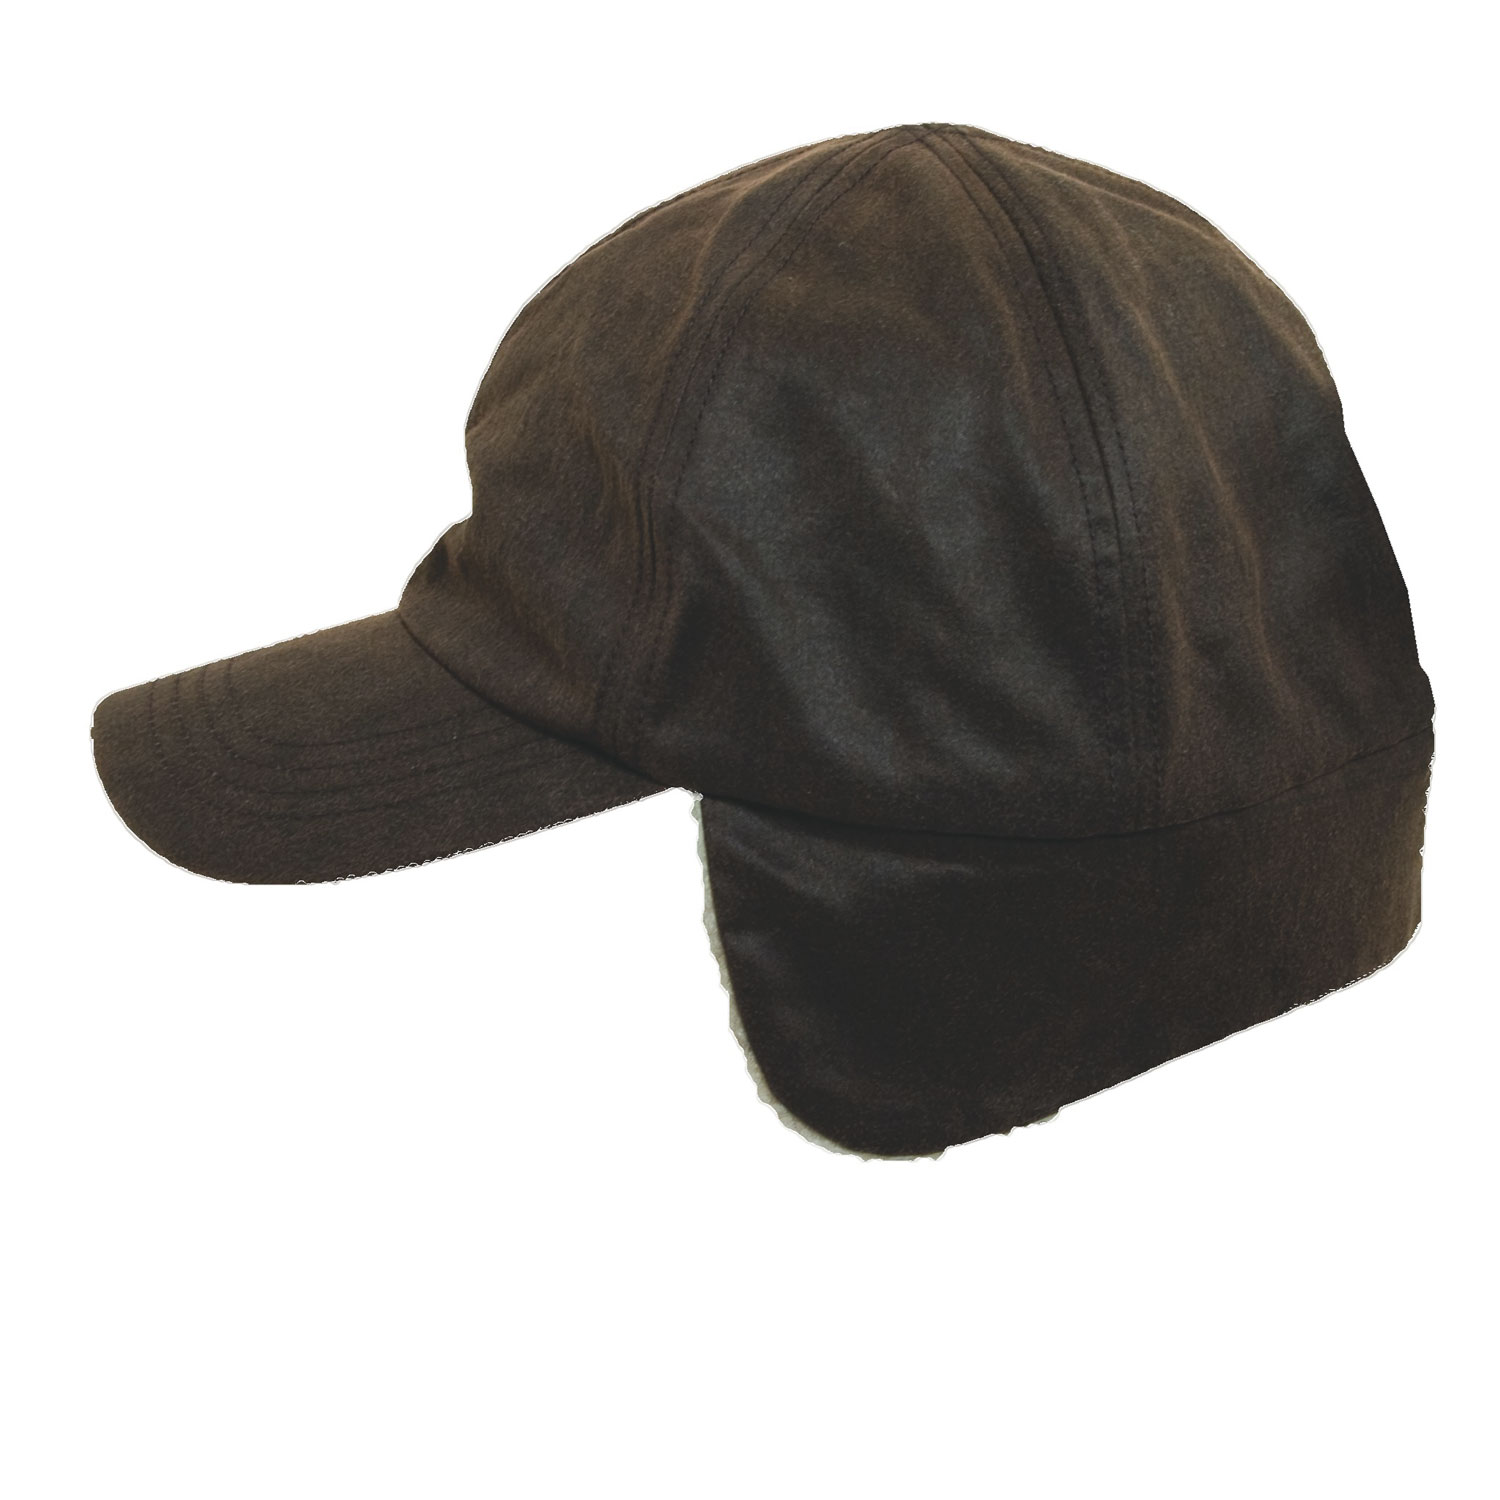 Weathered Cotton Winter Cap With Earflaps Explorer Hats